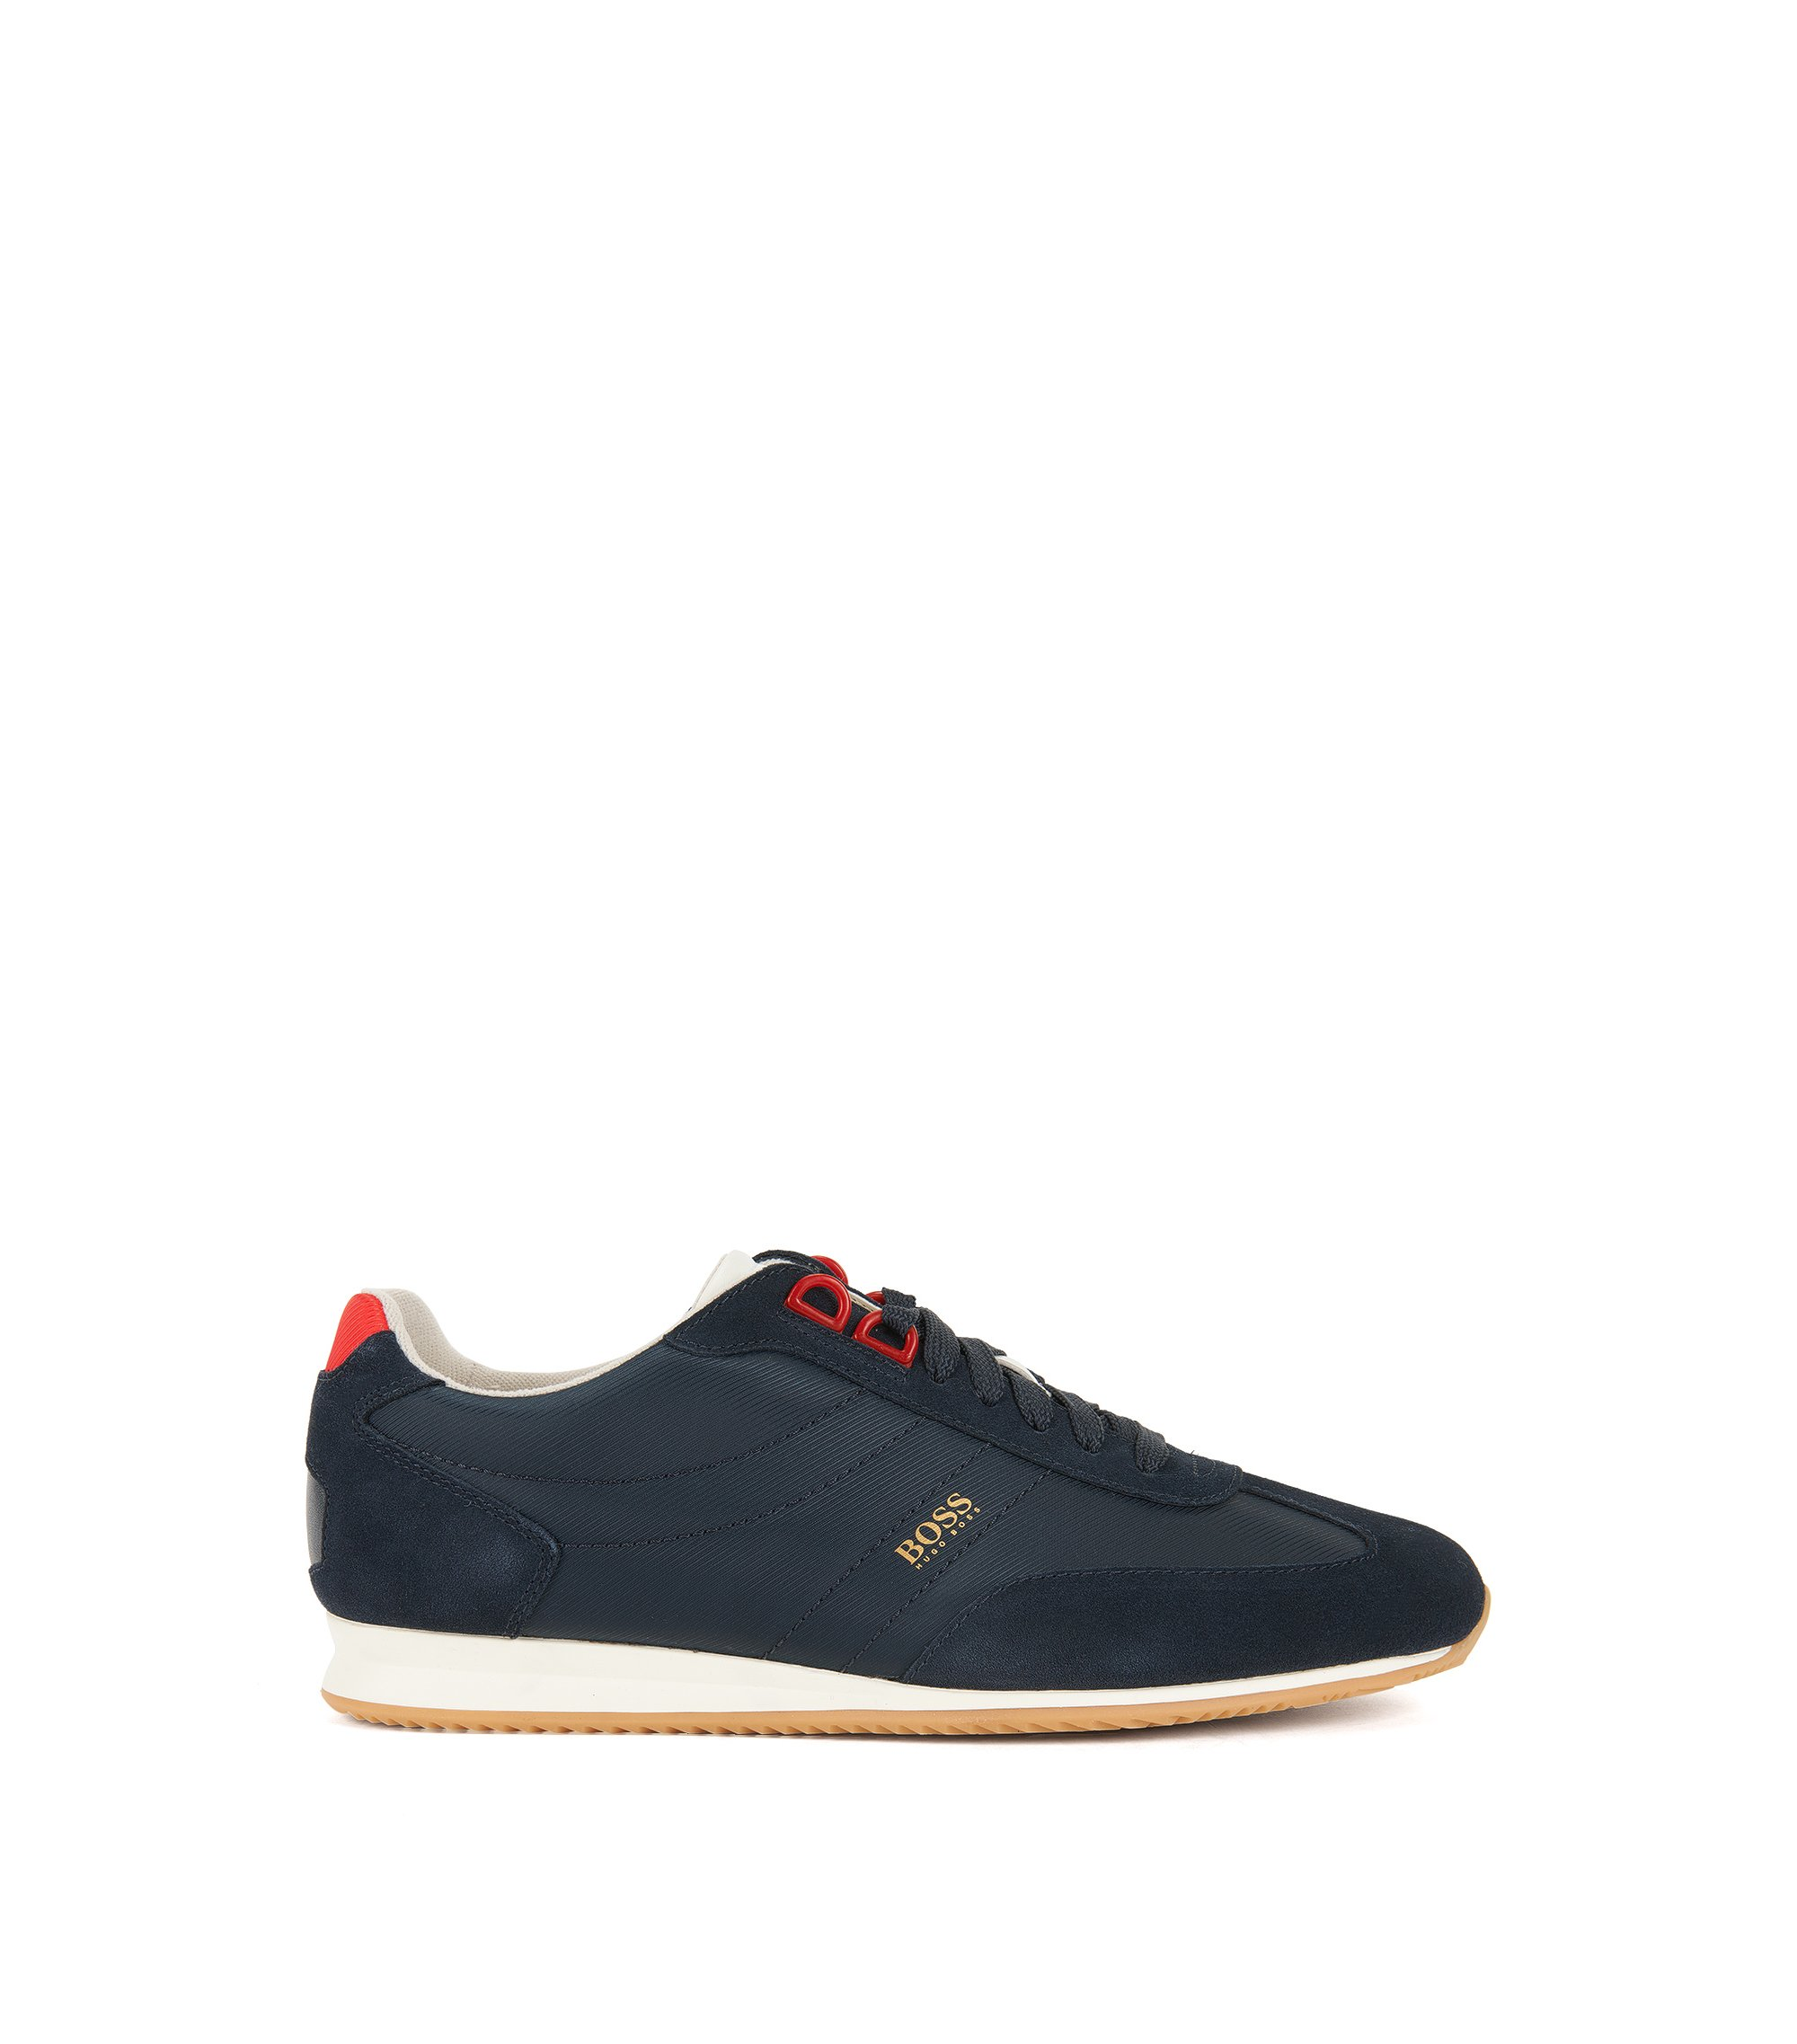 Suede & Nylon Sneaker | Orland Lowp Sdny, Dark Blue